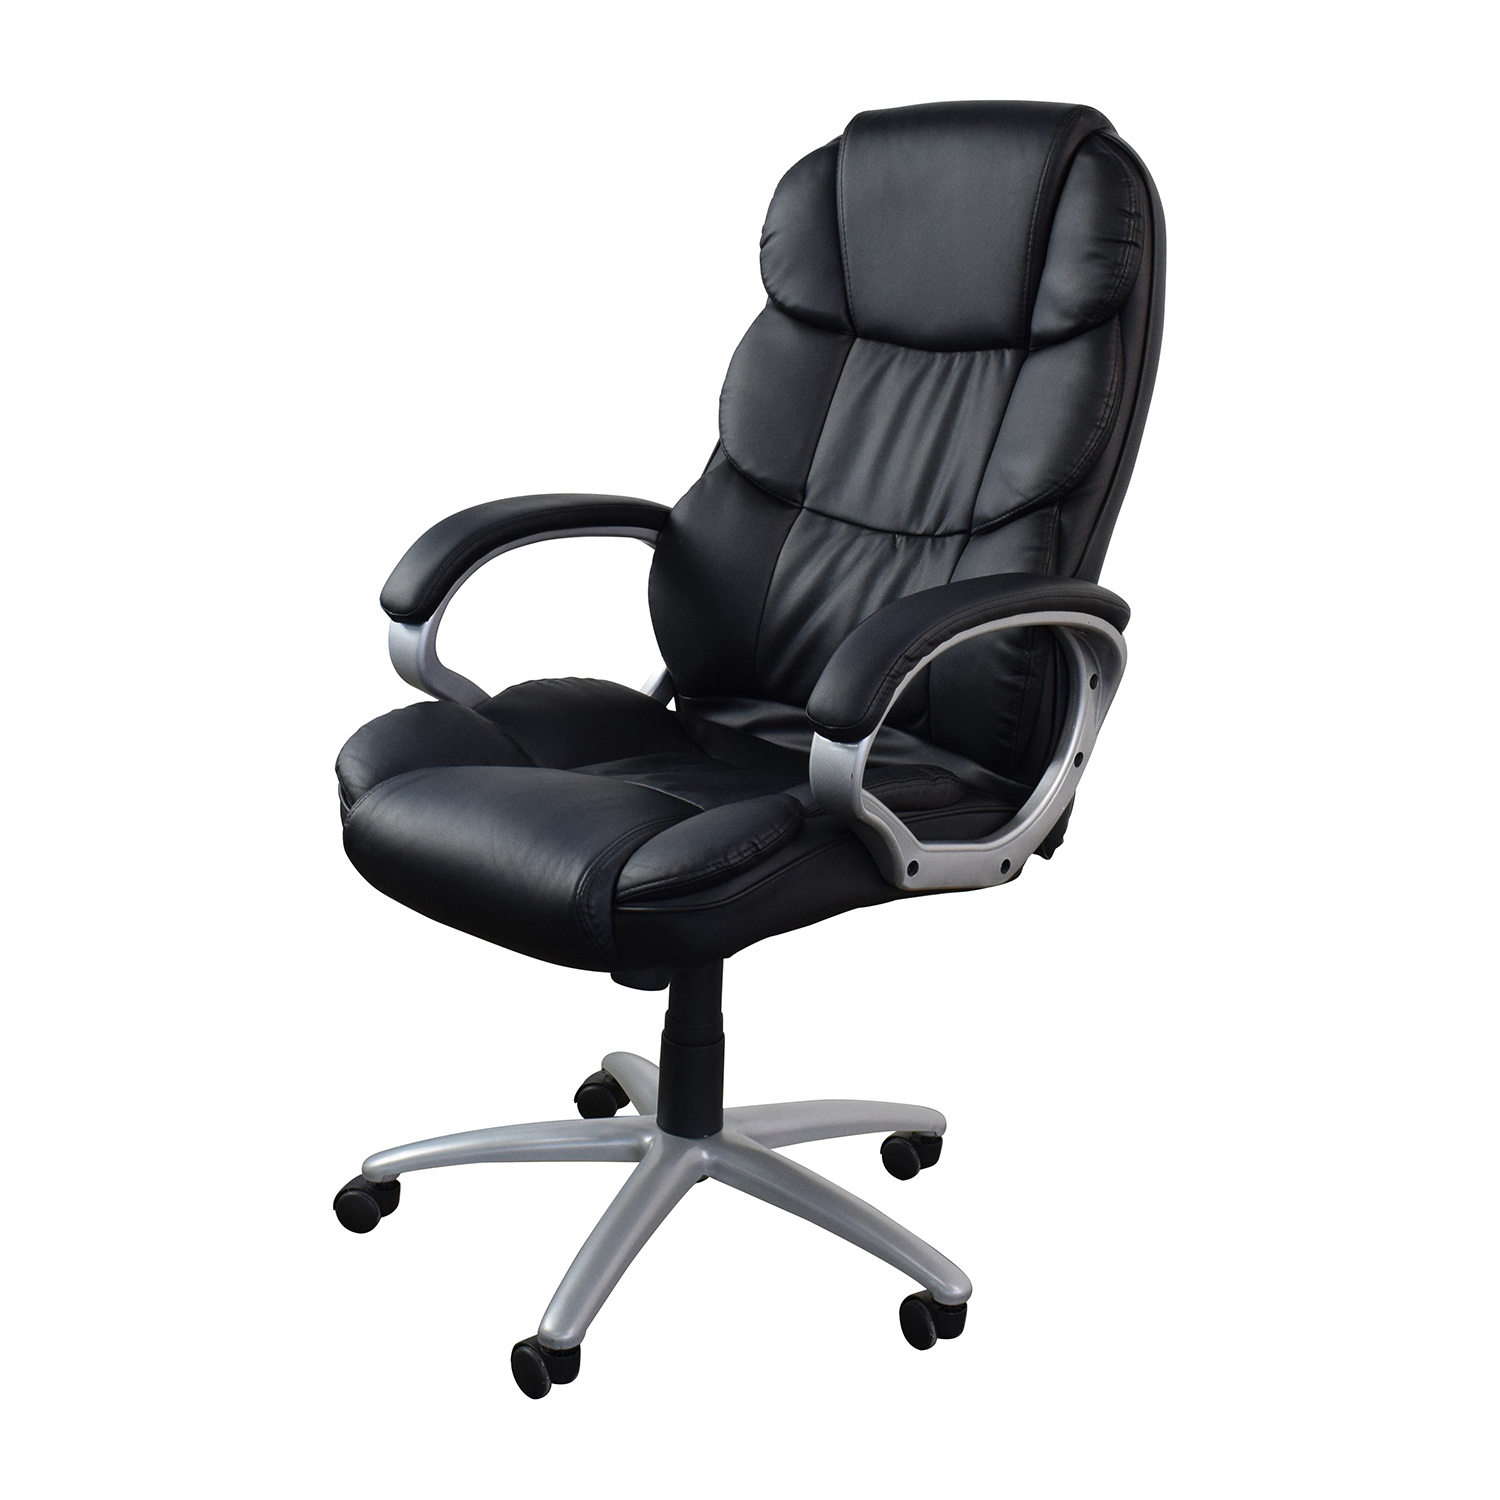 Black Leather Executive Office Chair second hand